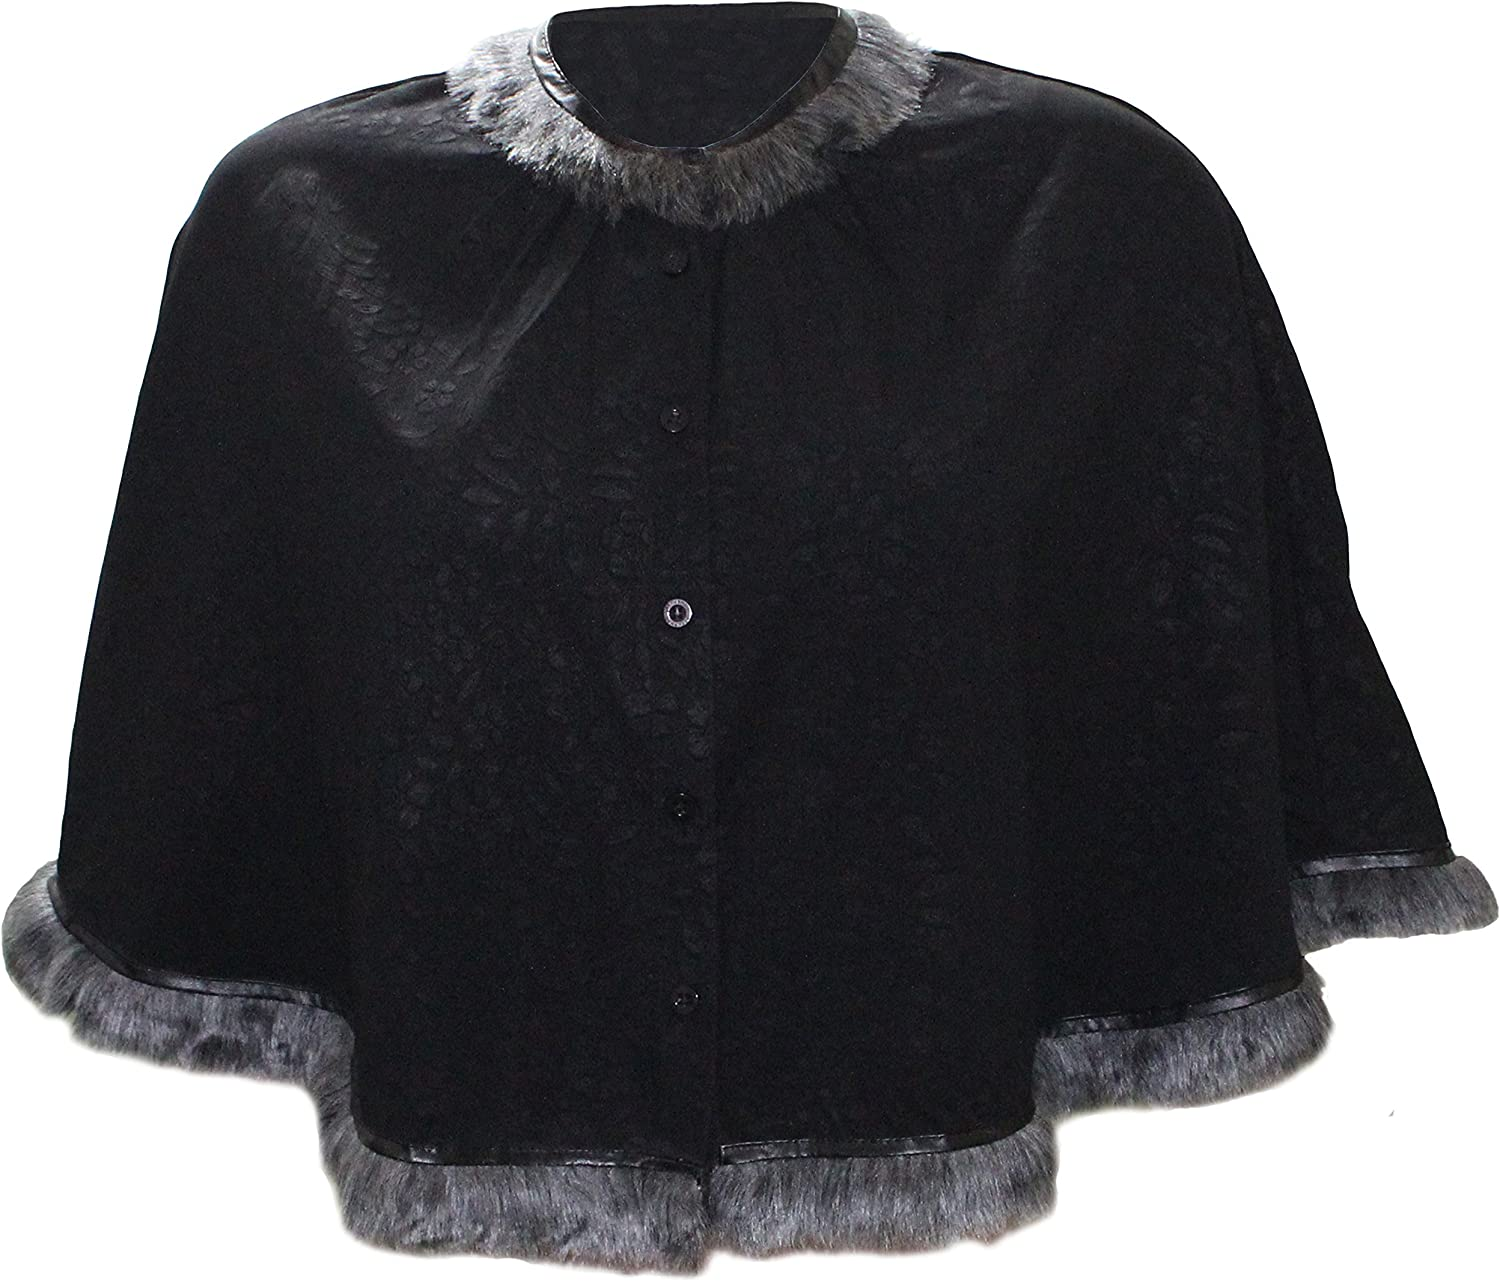 Attuendo Women's Short Cape with Faux Fur Details